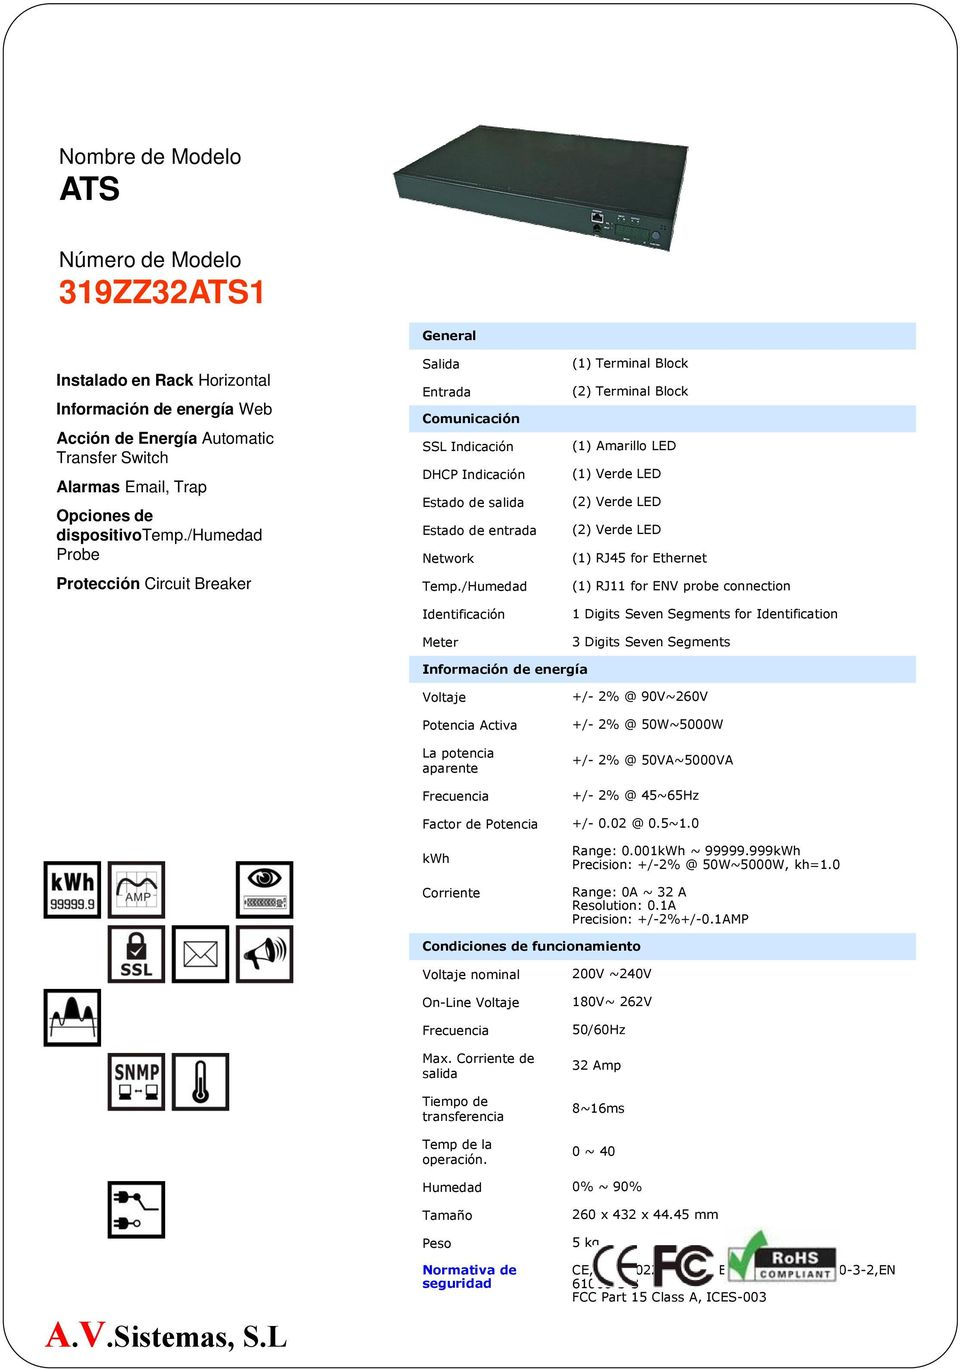 /Humedad Identificación Meter (1) Terminal Block (2) Terminal Block (2) Verde LED (2) Verde LED (1) RJ45 for Ethernet (1) RJ11 for ENV probe connection 1 Digits Seven Segments for Identification 3